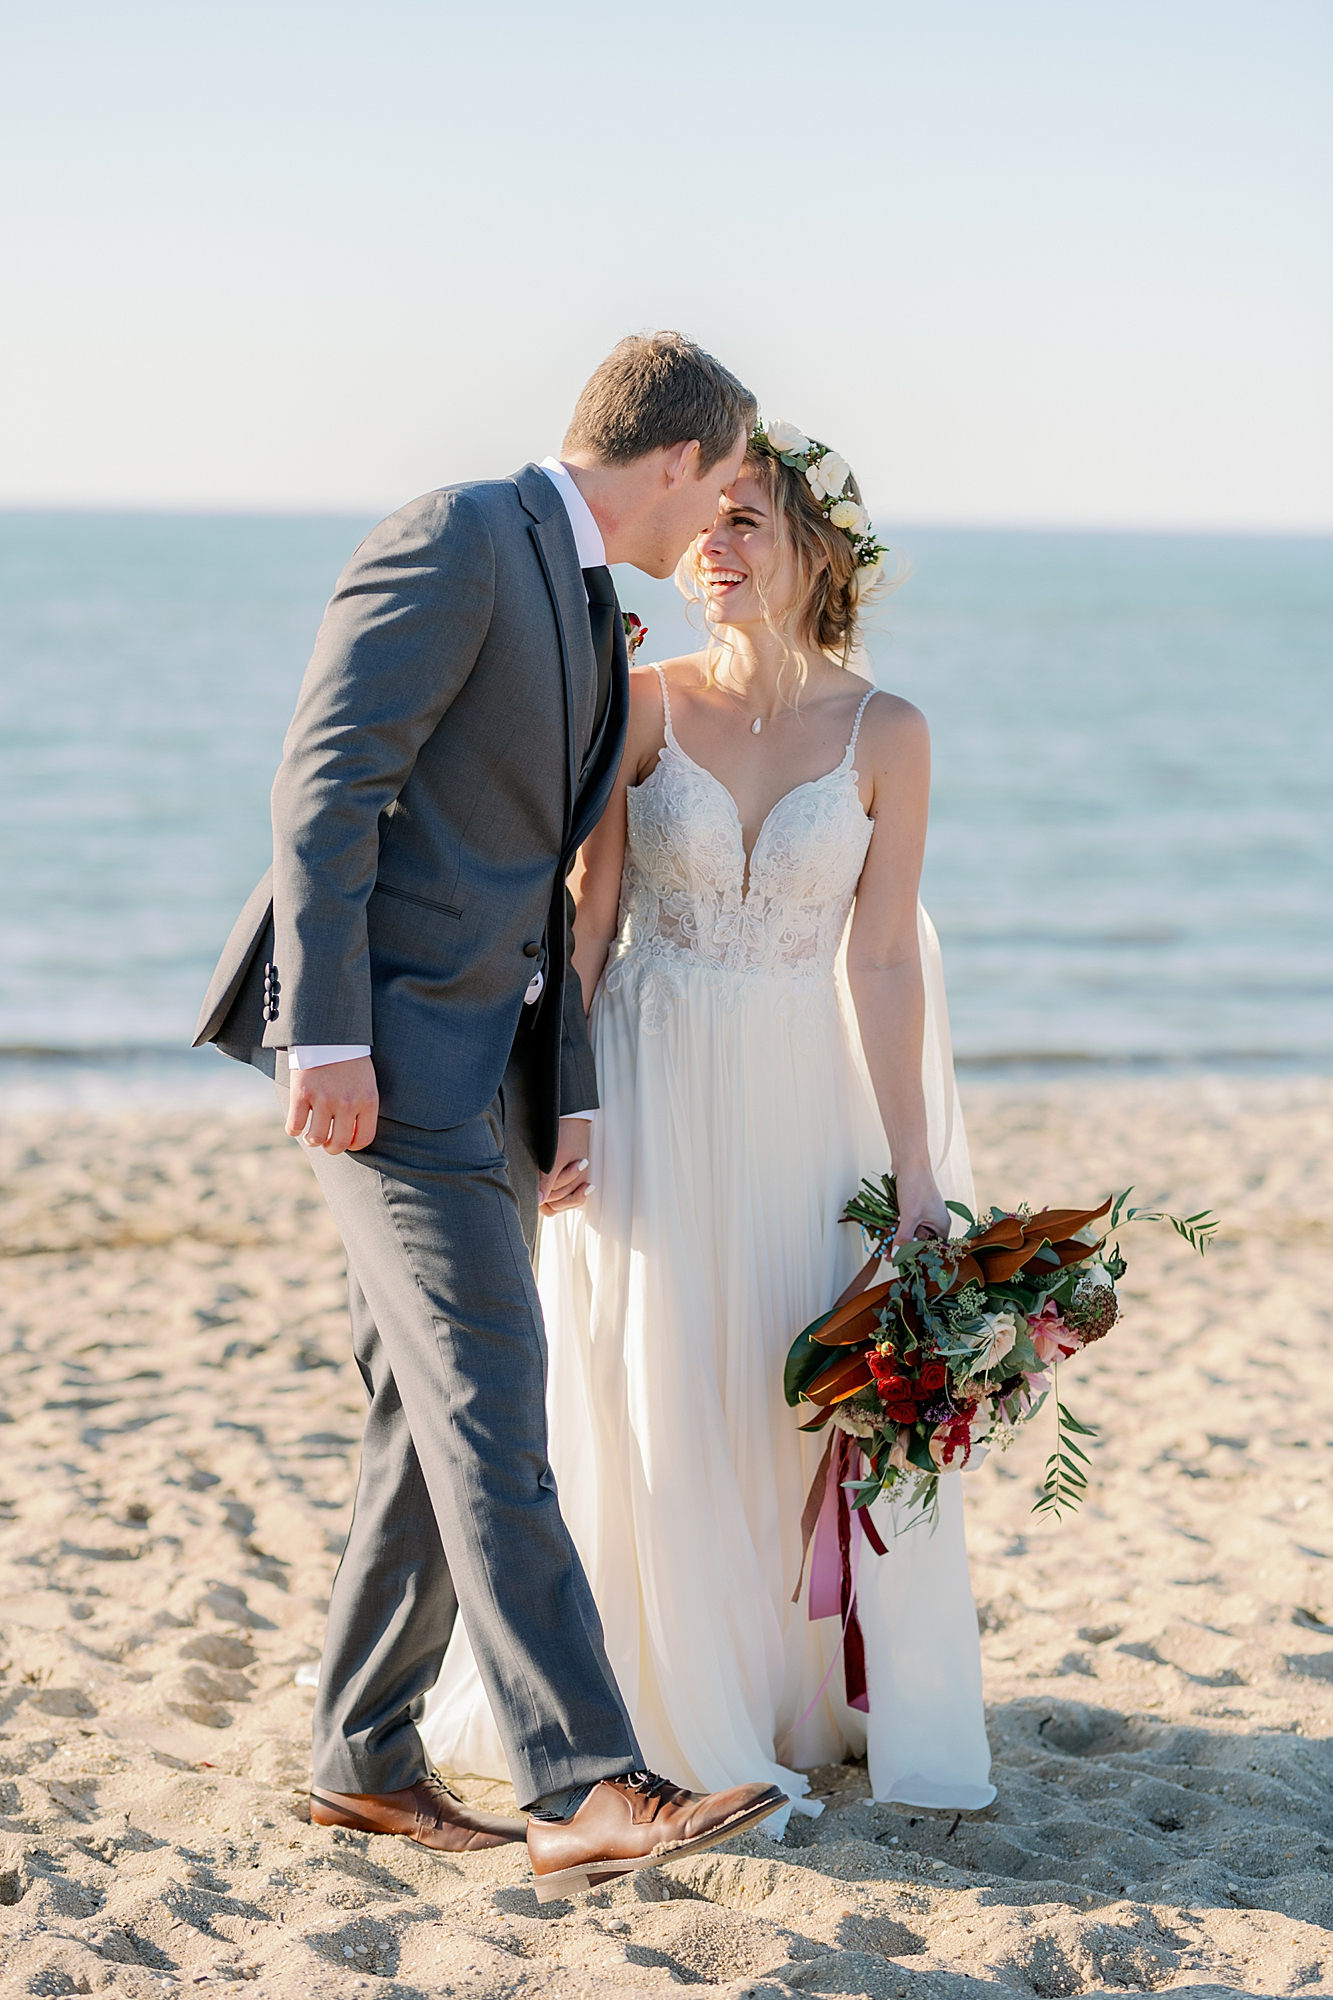 Cape May Wedding Photography by Magdalena Studios 0023